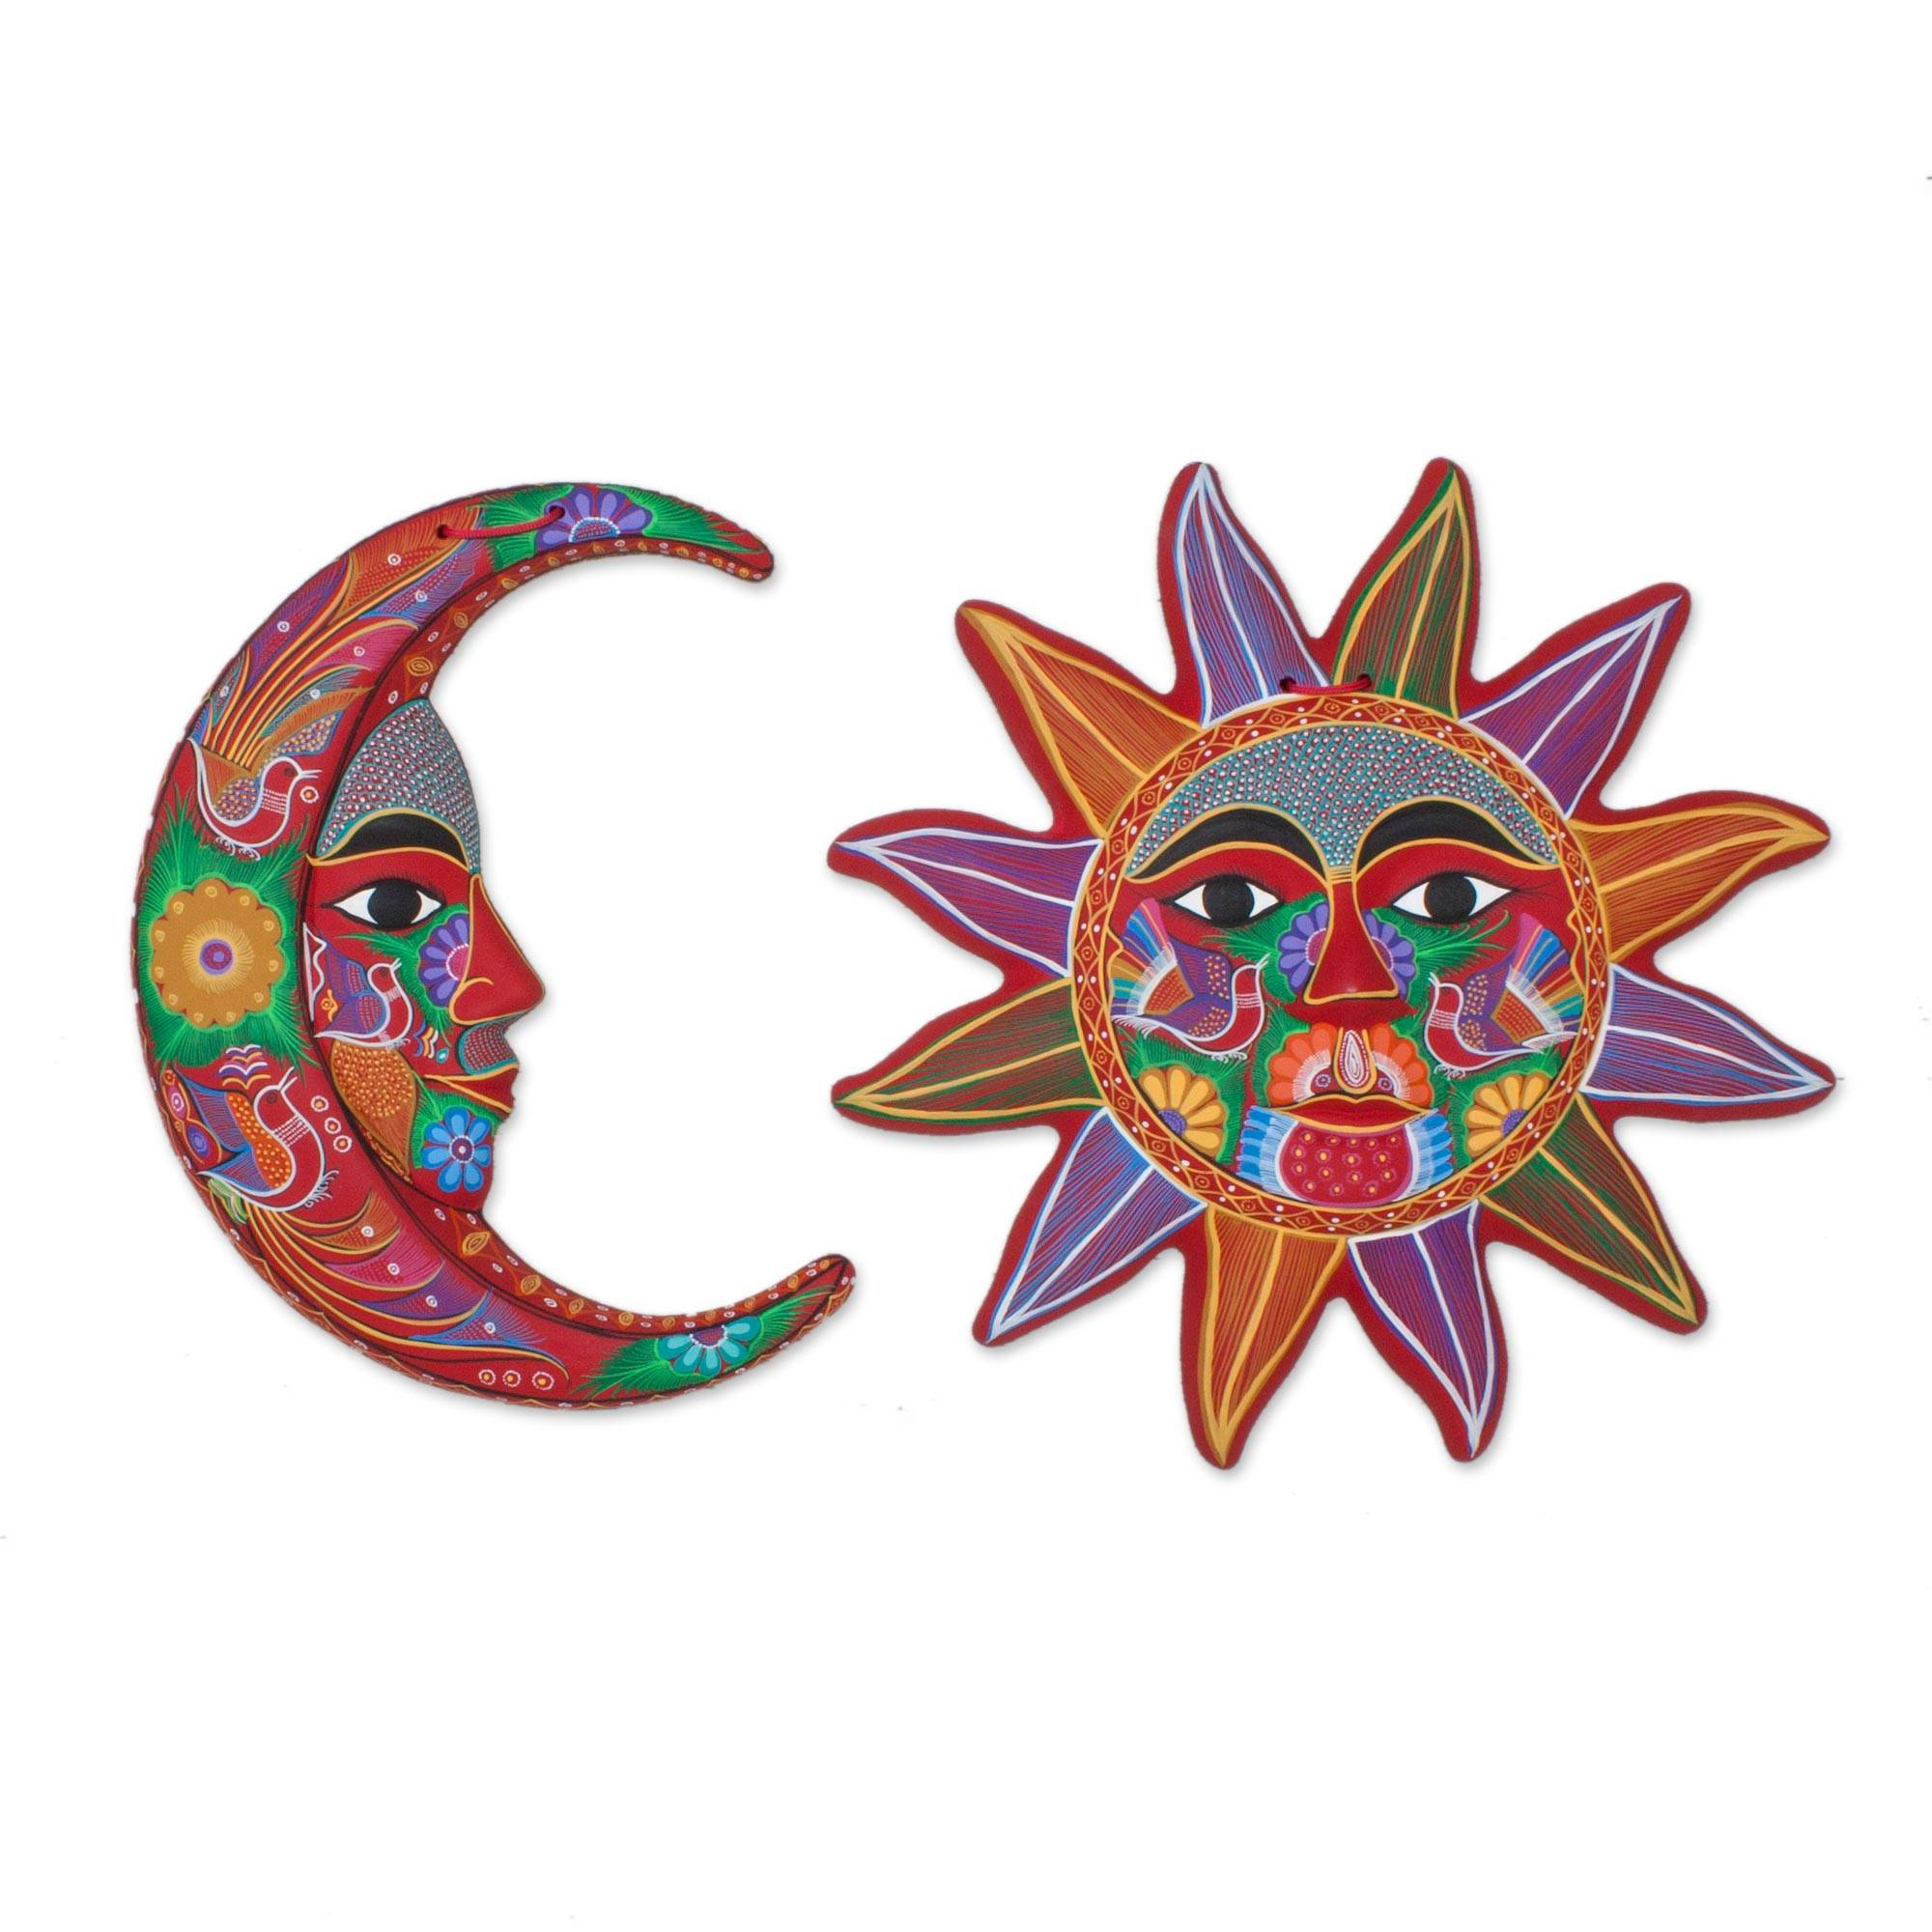 Sun And Moon Wall Art fair trade sun and moon ceramic wall art from mexico (pair